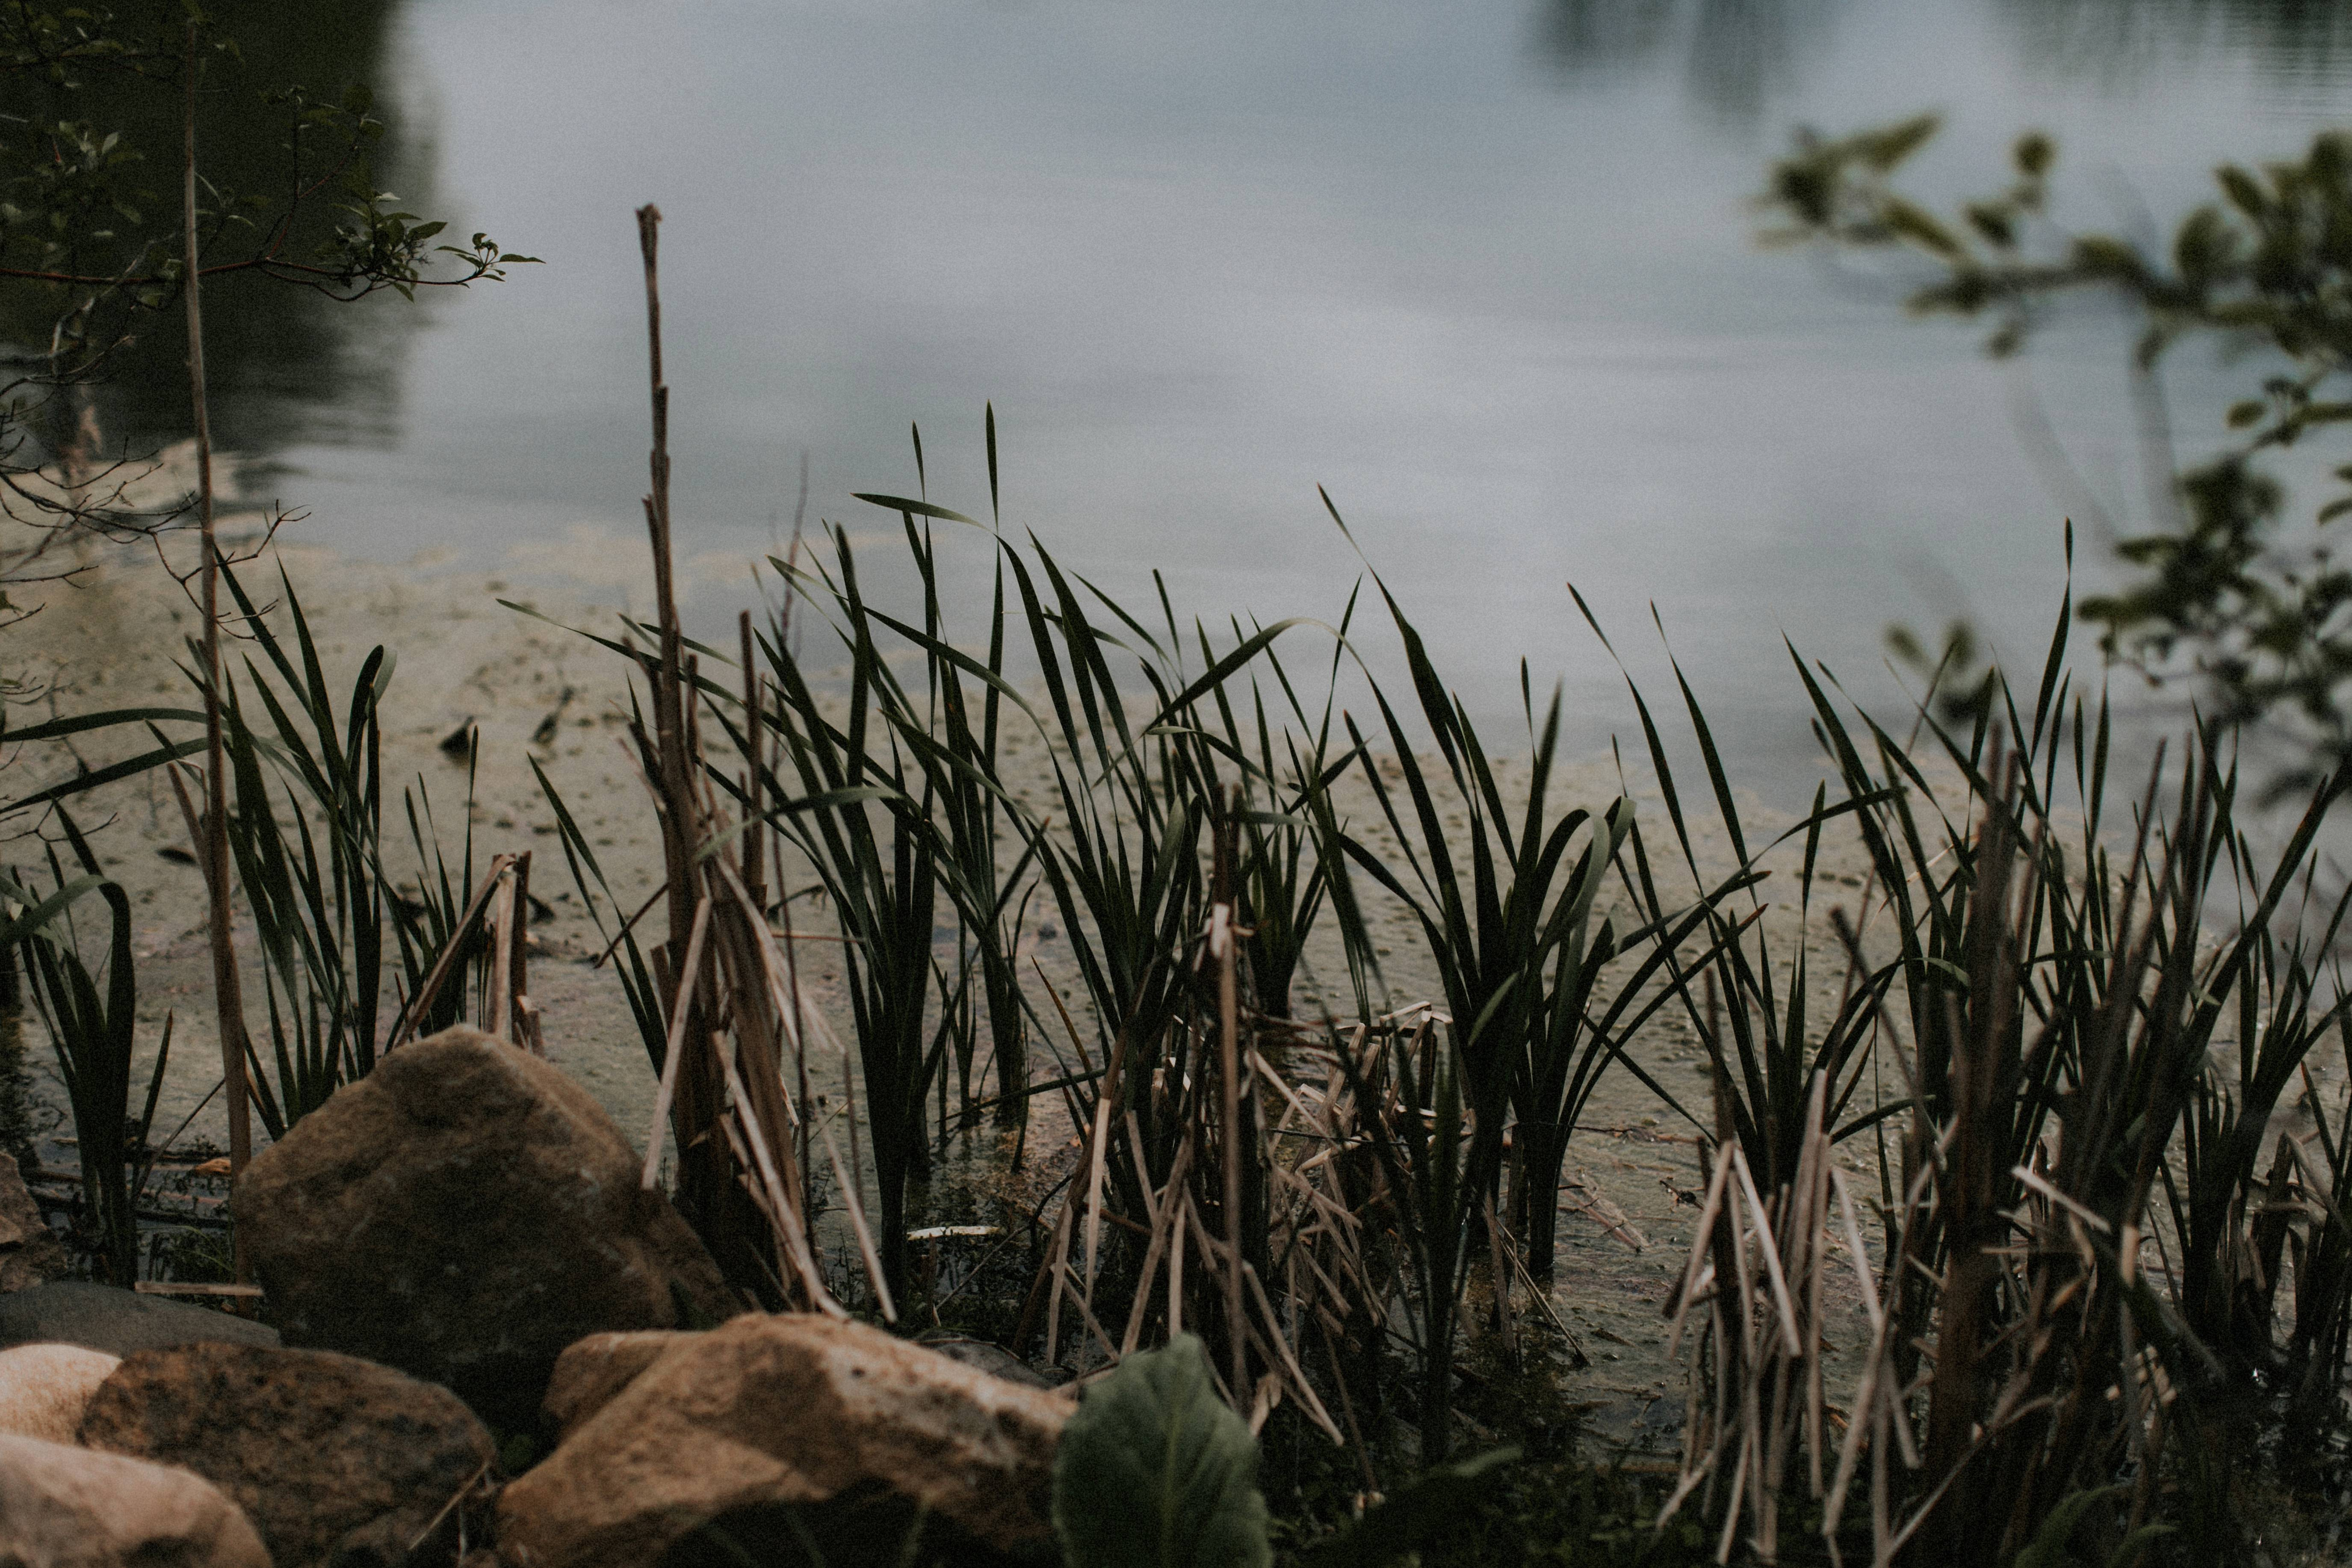 reeds by a pond